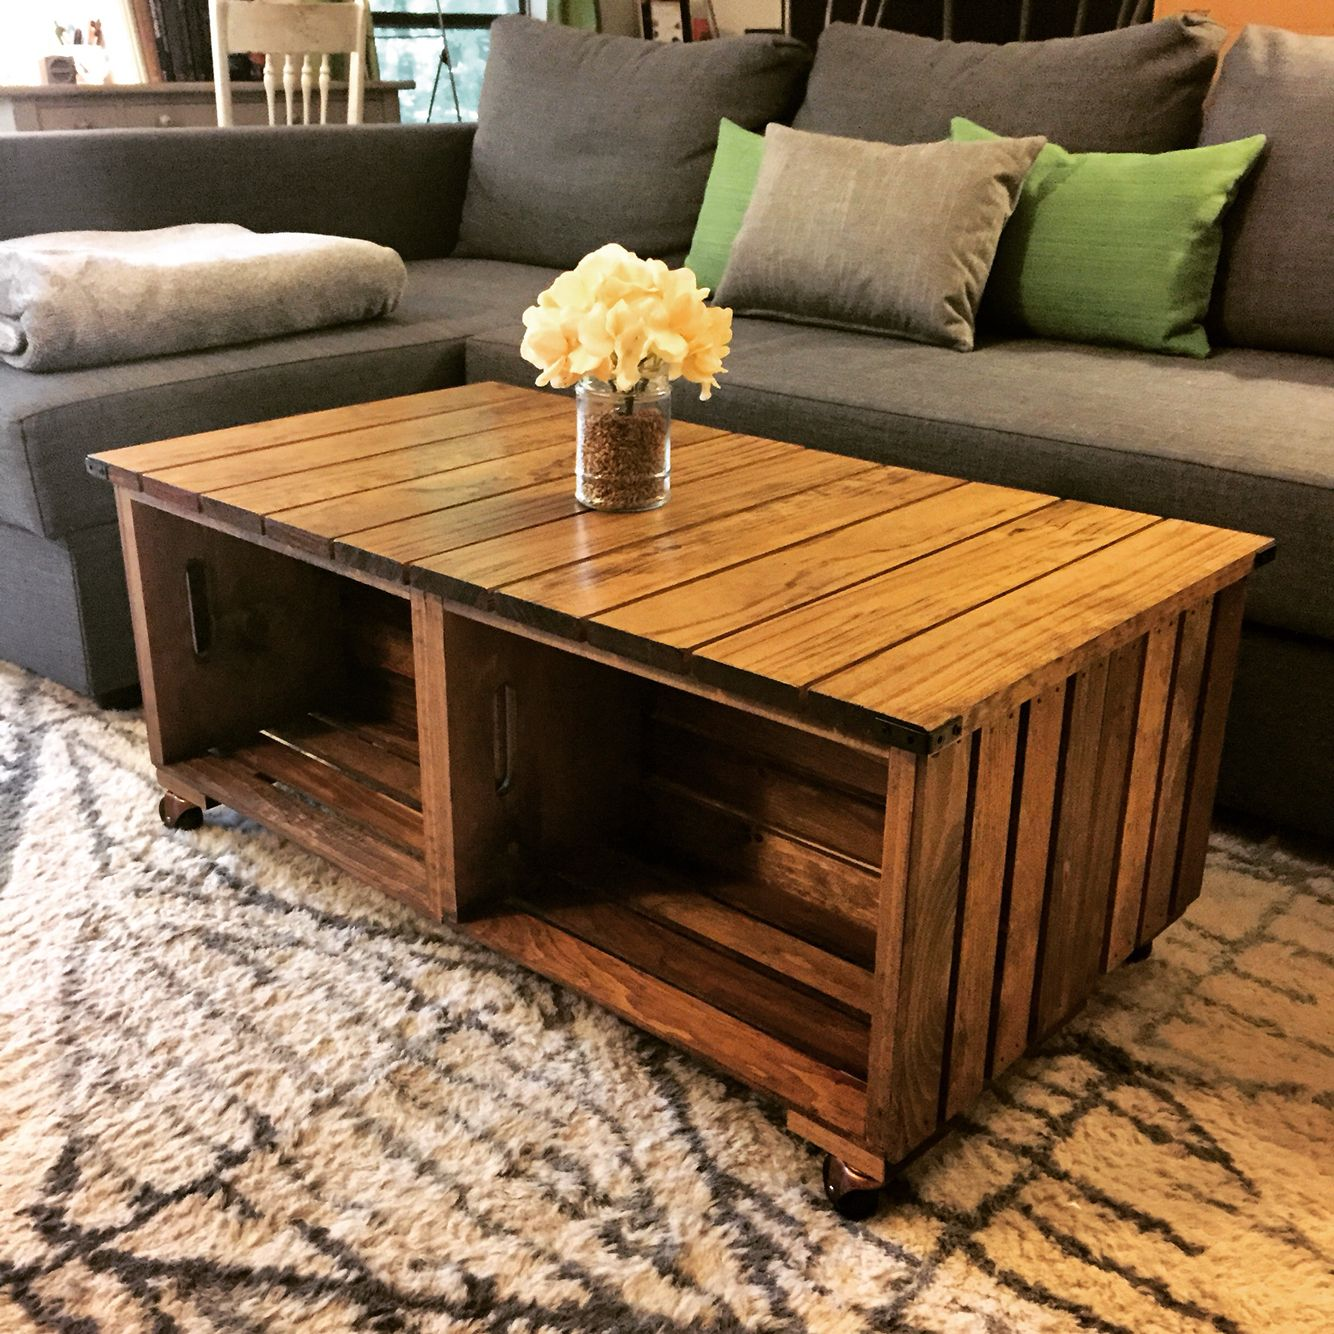 Our DIY wood crate coffee table! How we did it: We used 4 wood - DIY Wood Crate Coffee Table Free Plans [Instructions] Crafting